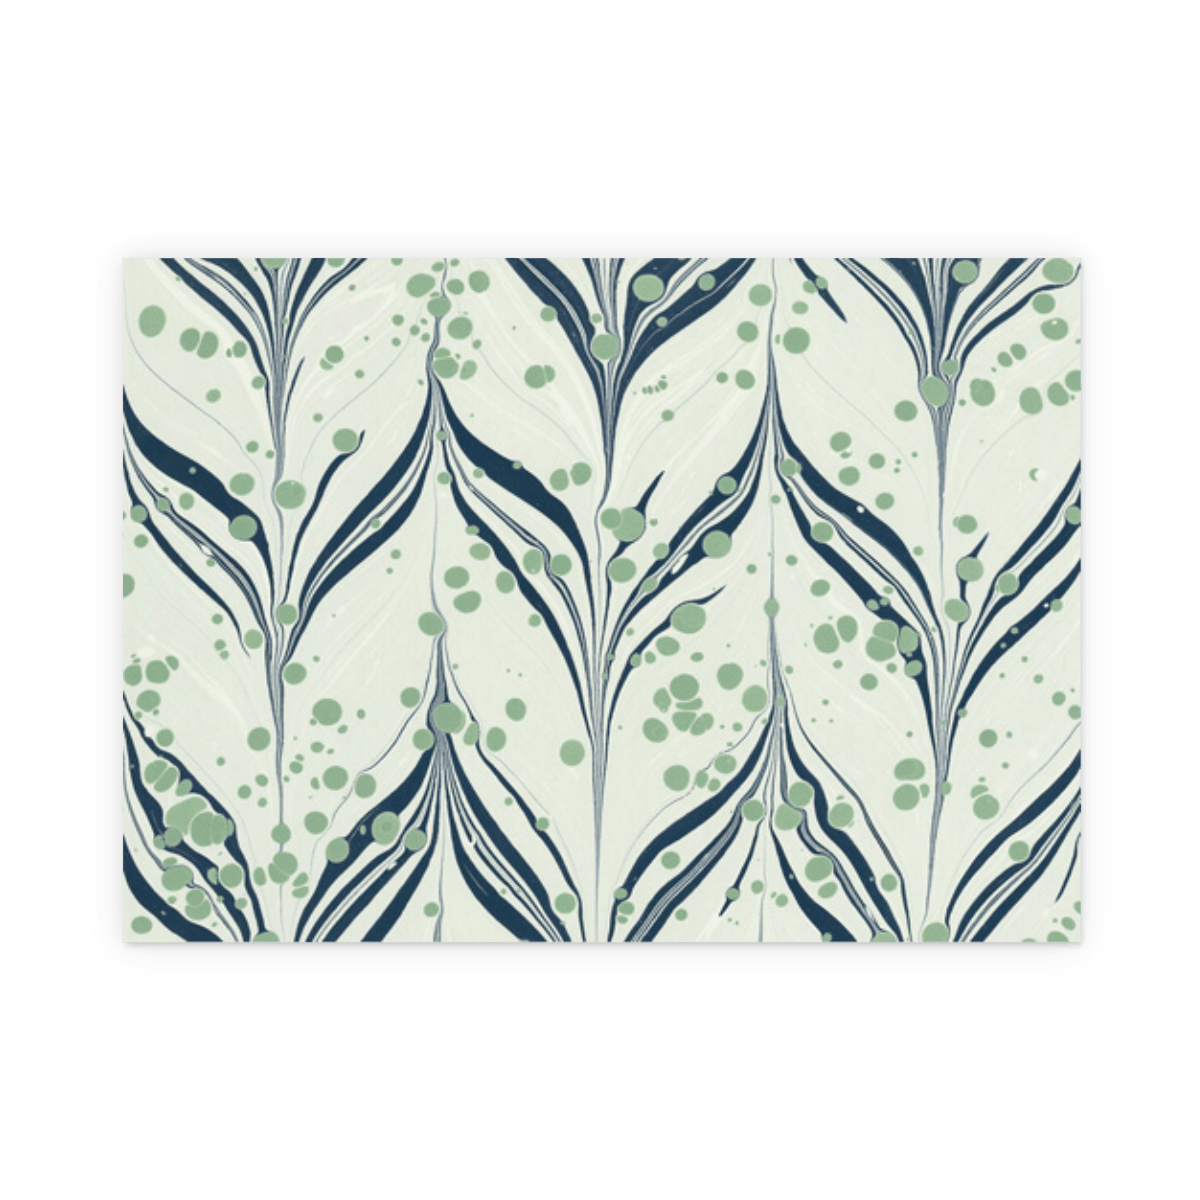 Https%3a%2f%2fwww.papier.com%2fproduct image%2f97269%2f42%2fzebra marble 24414 back 1574957157.png?ixlib=rb 1.1